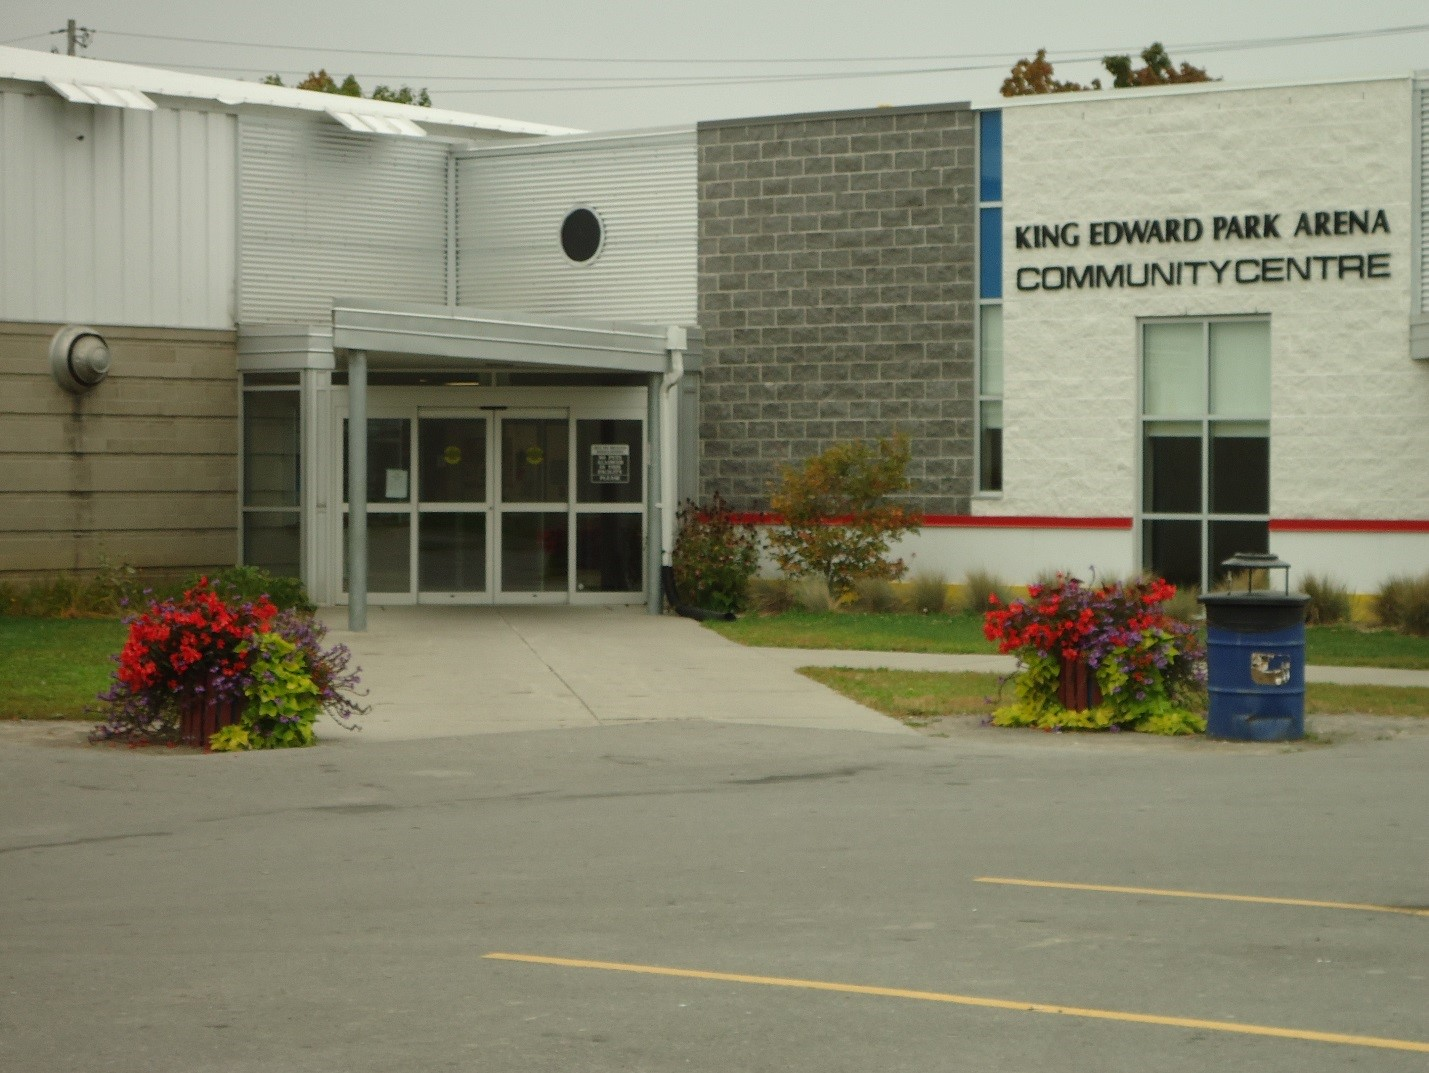 Photo of King Edward Park Arena